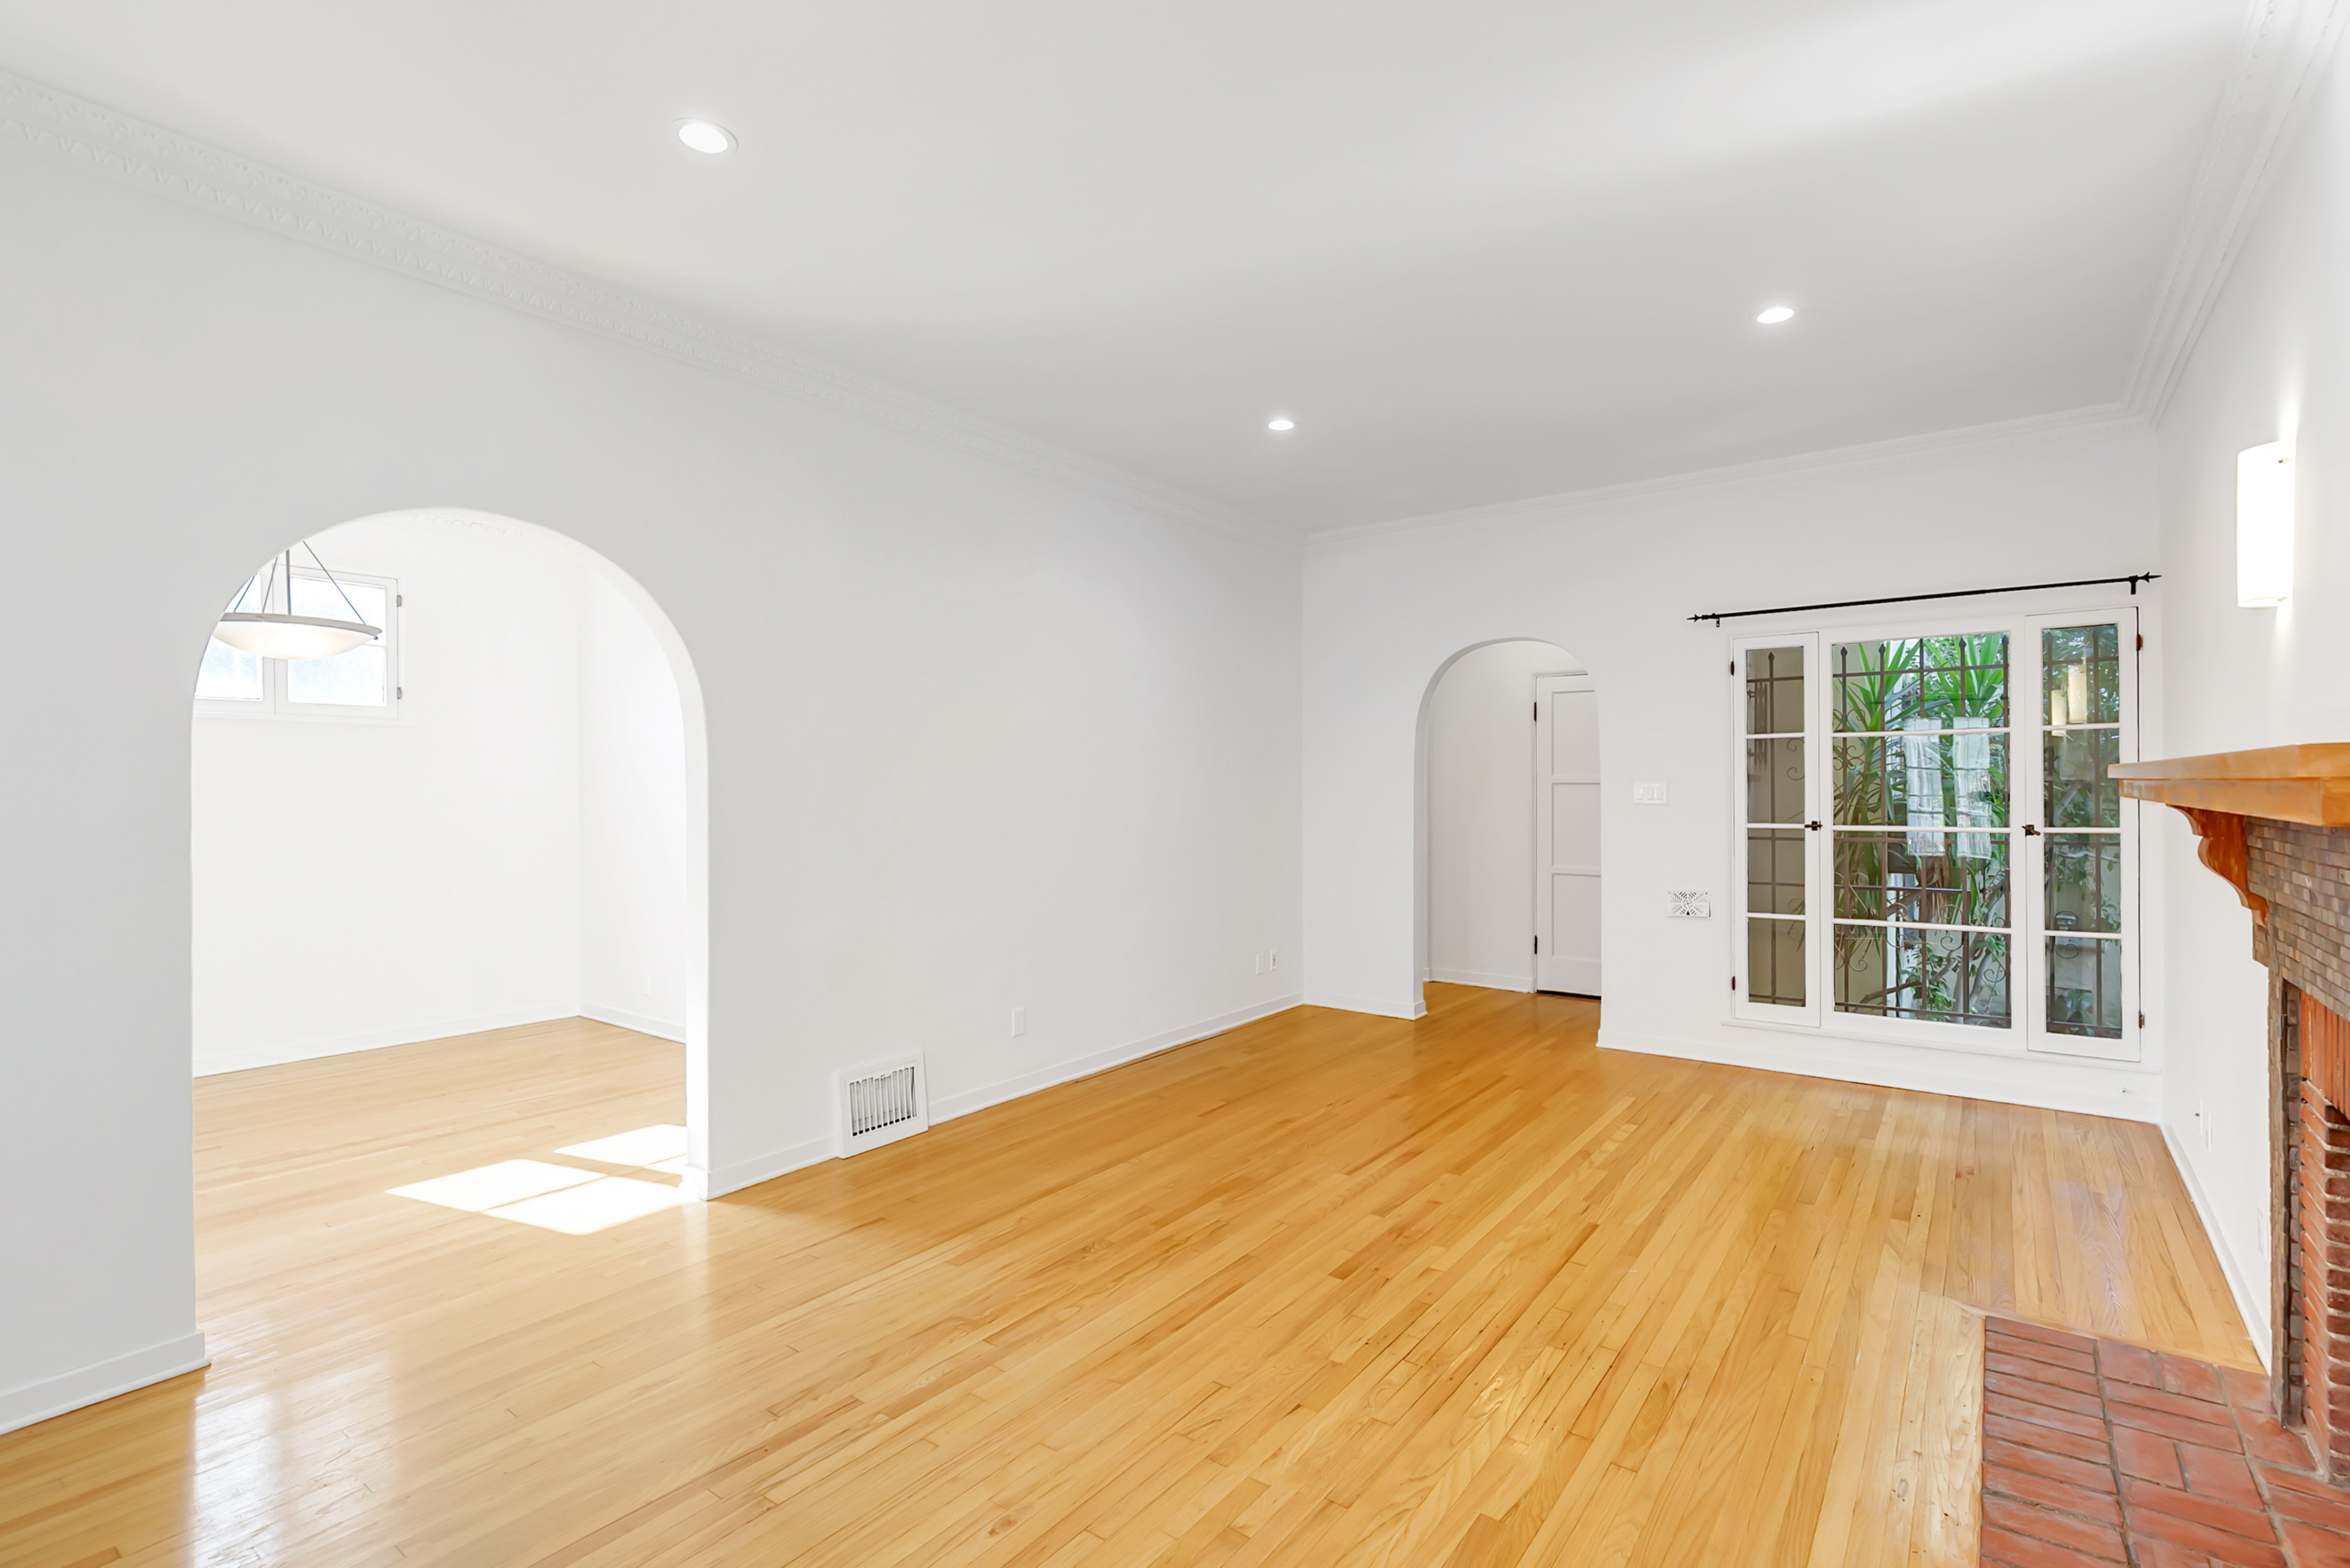 Stunning 1BR/ 1BA 1920s DREAM APARTMENT w/ Separate Dining, Decorative Fireplace, Garage Storage, & More!